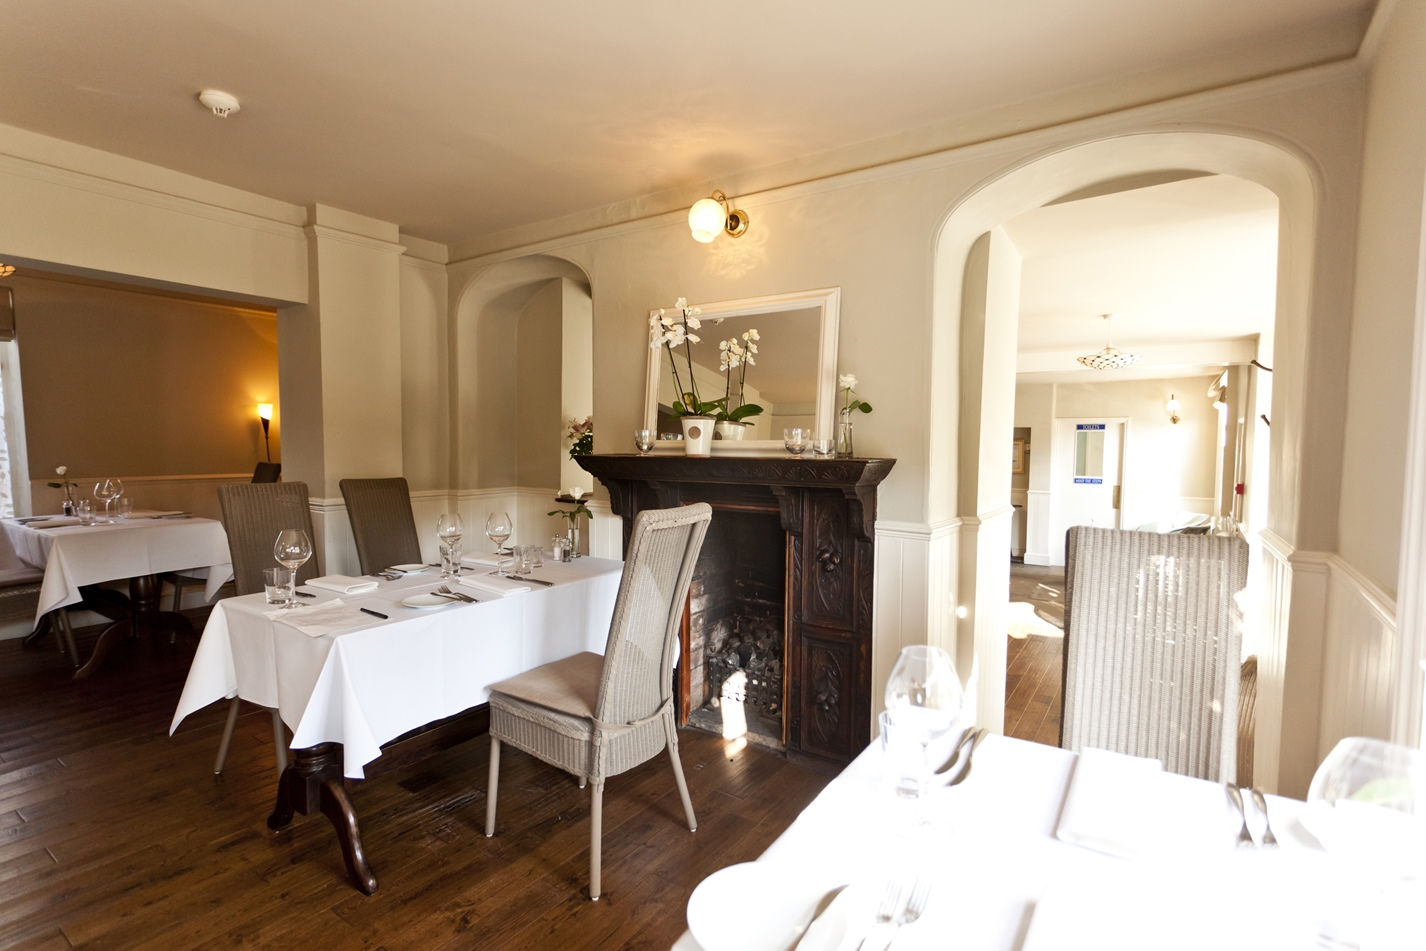 Refurbished coaching inn